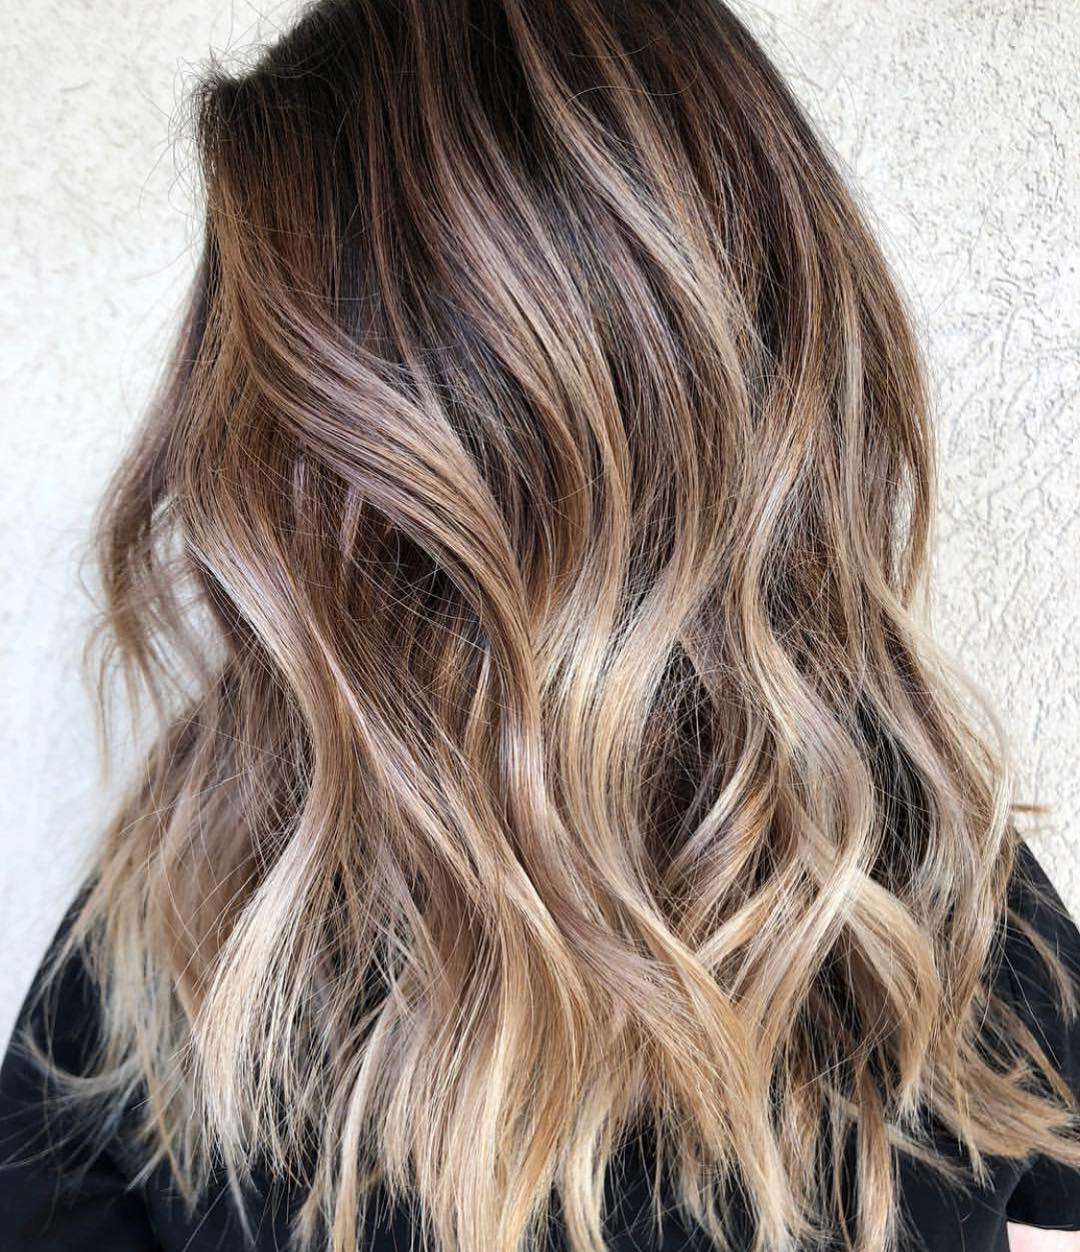 70 Balayage Hair Color Ideas With Blonde Brown And Caramel Highlights